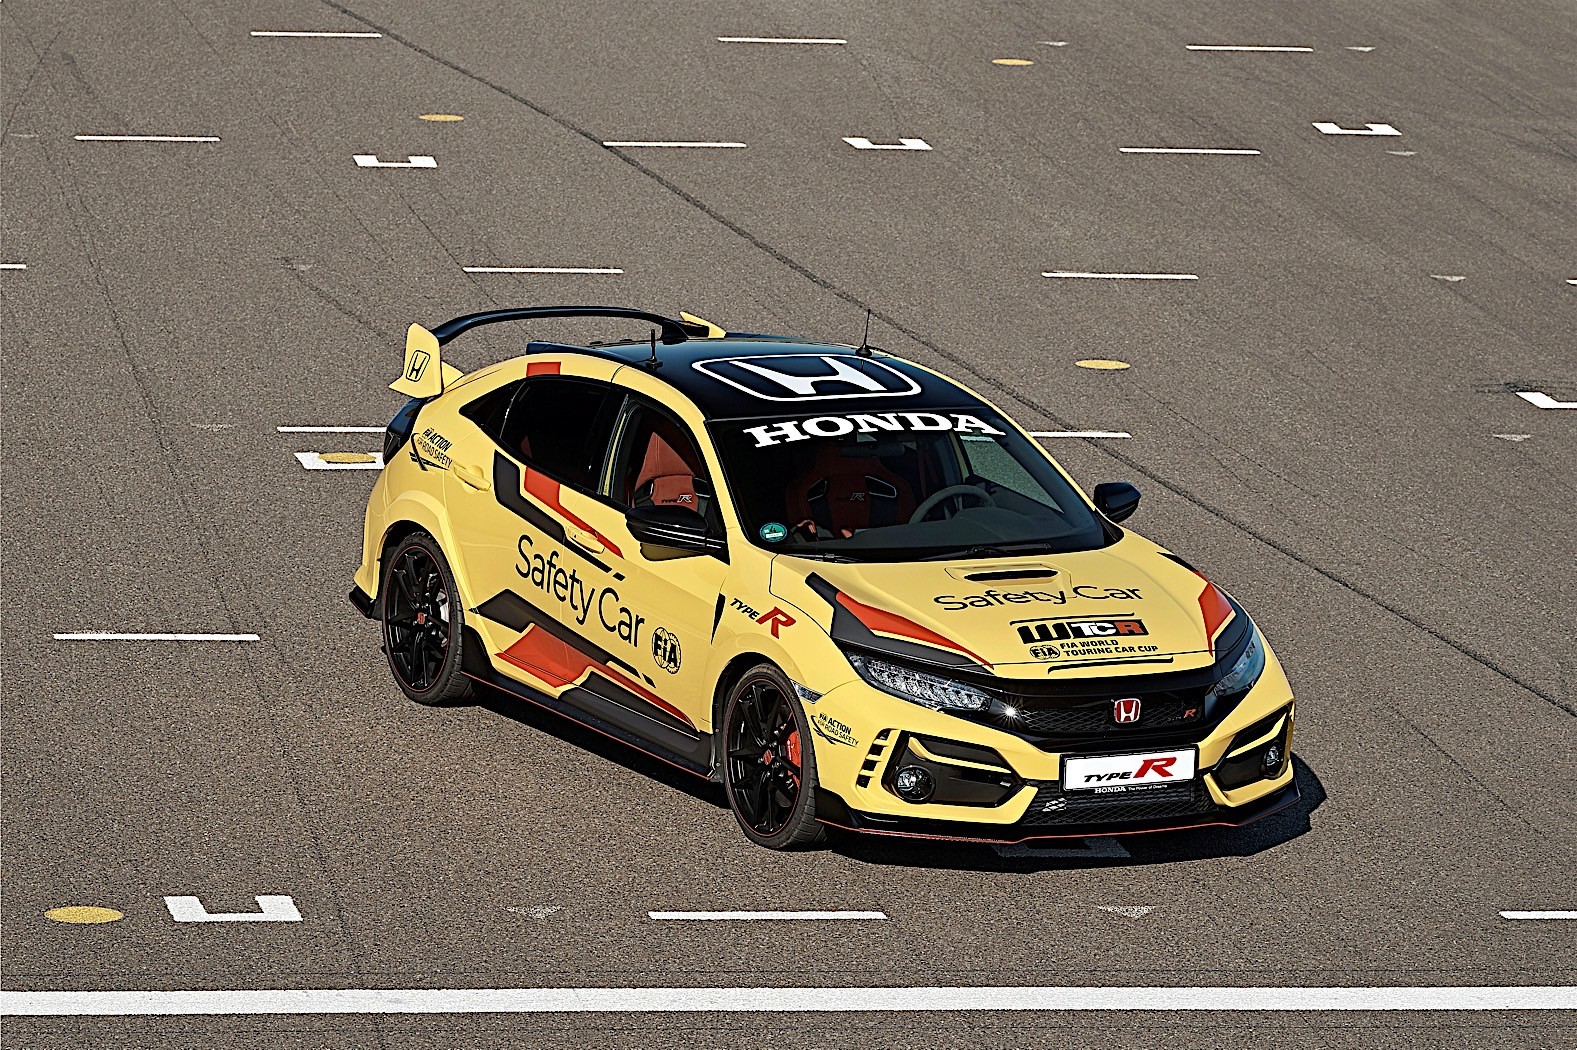 Honda_Civic_Type_R_Limited_safety_car_WTCR_0007